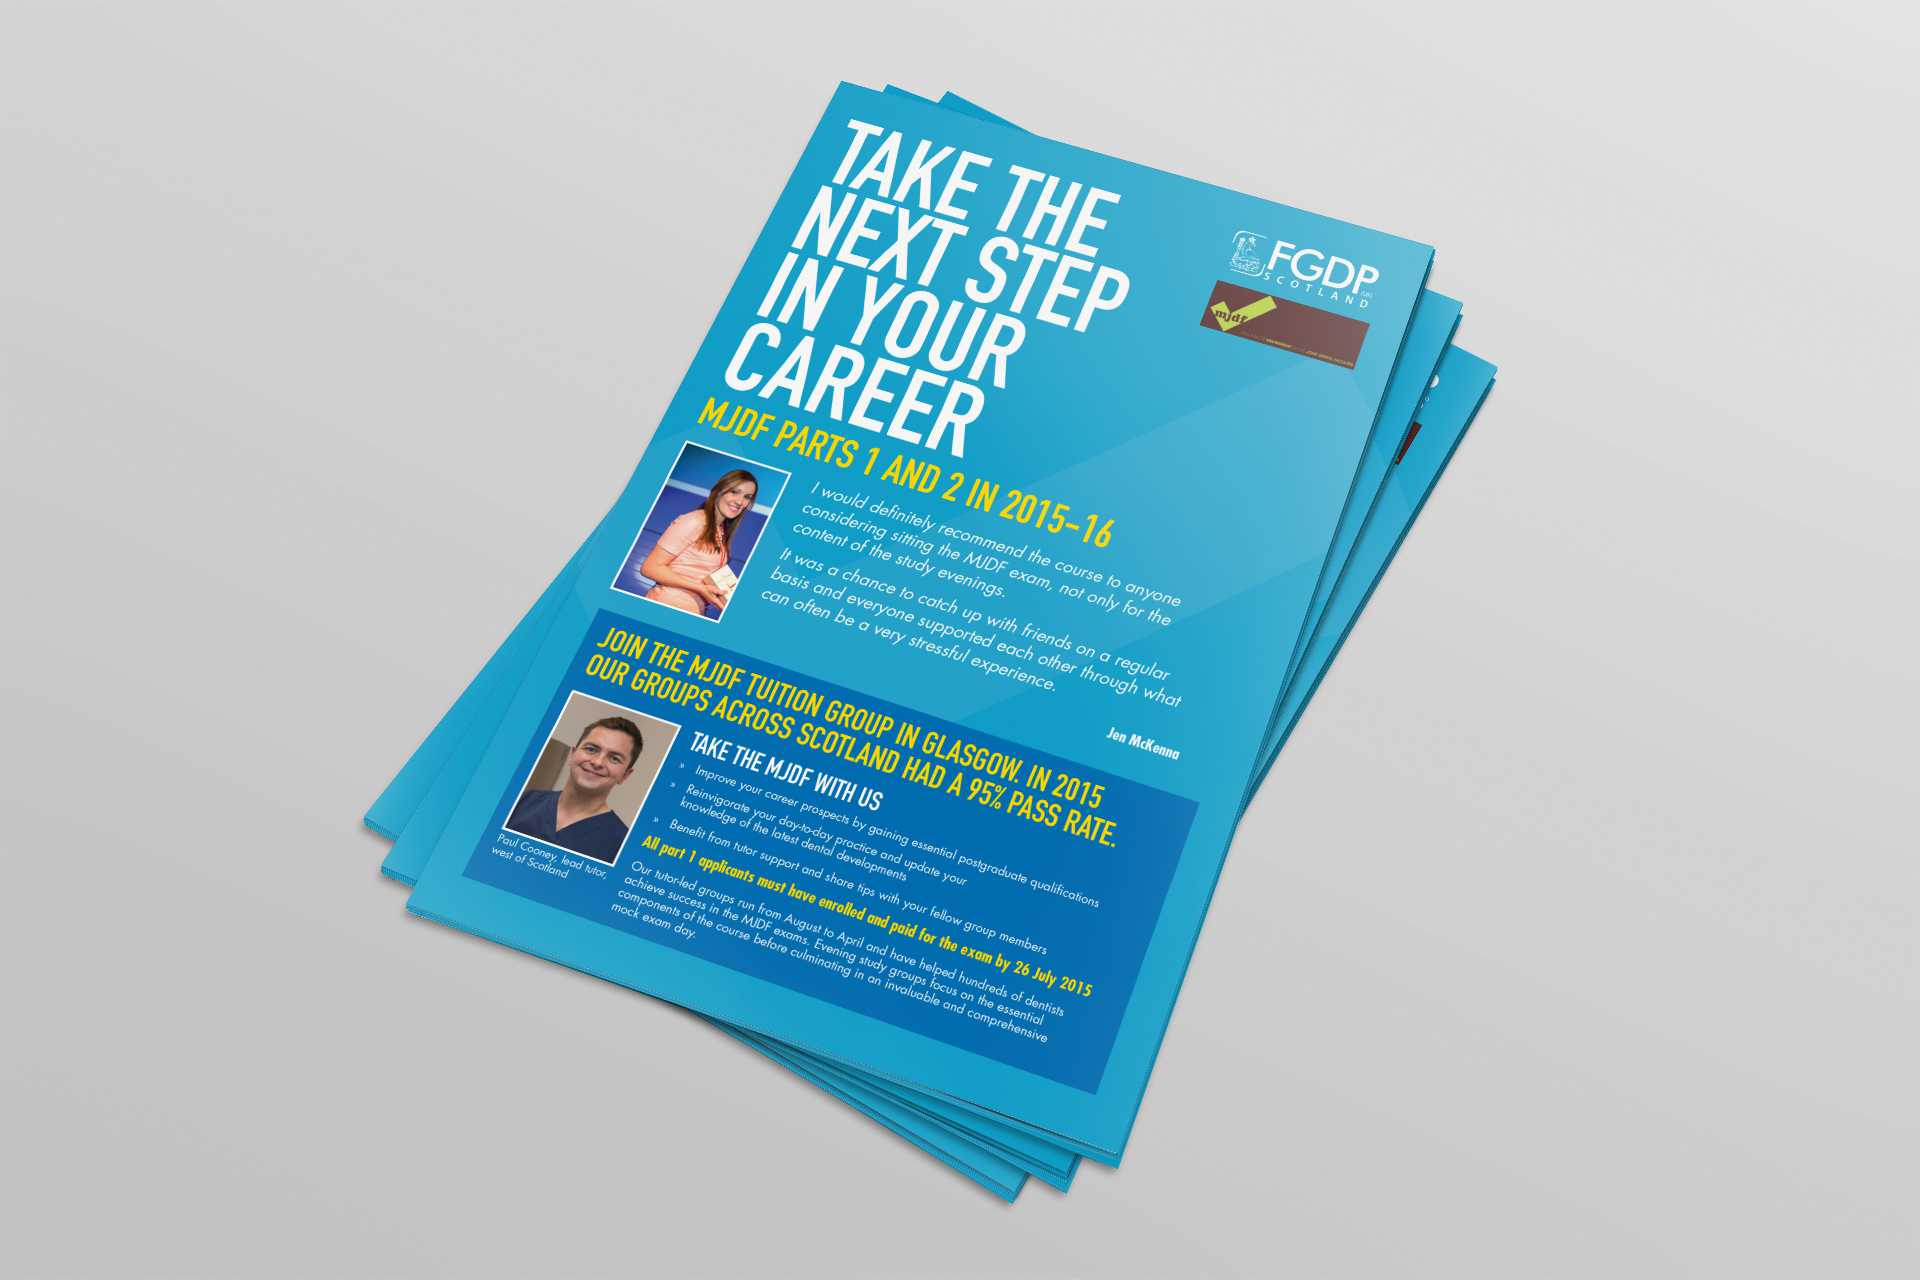 Flyer-design-Glasgow-Edinburgh-West-Lothian-16.jpg